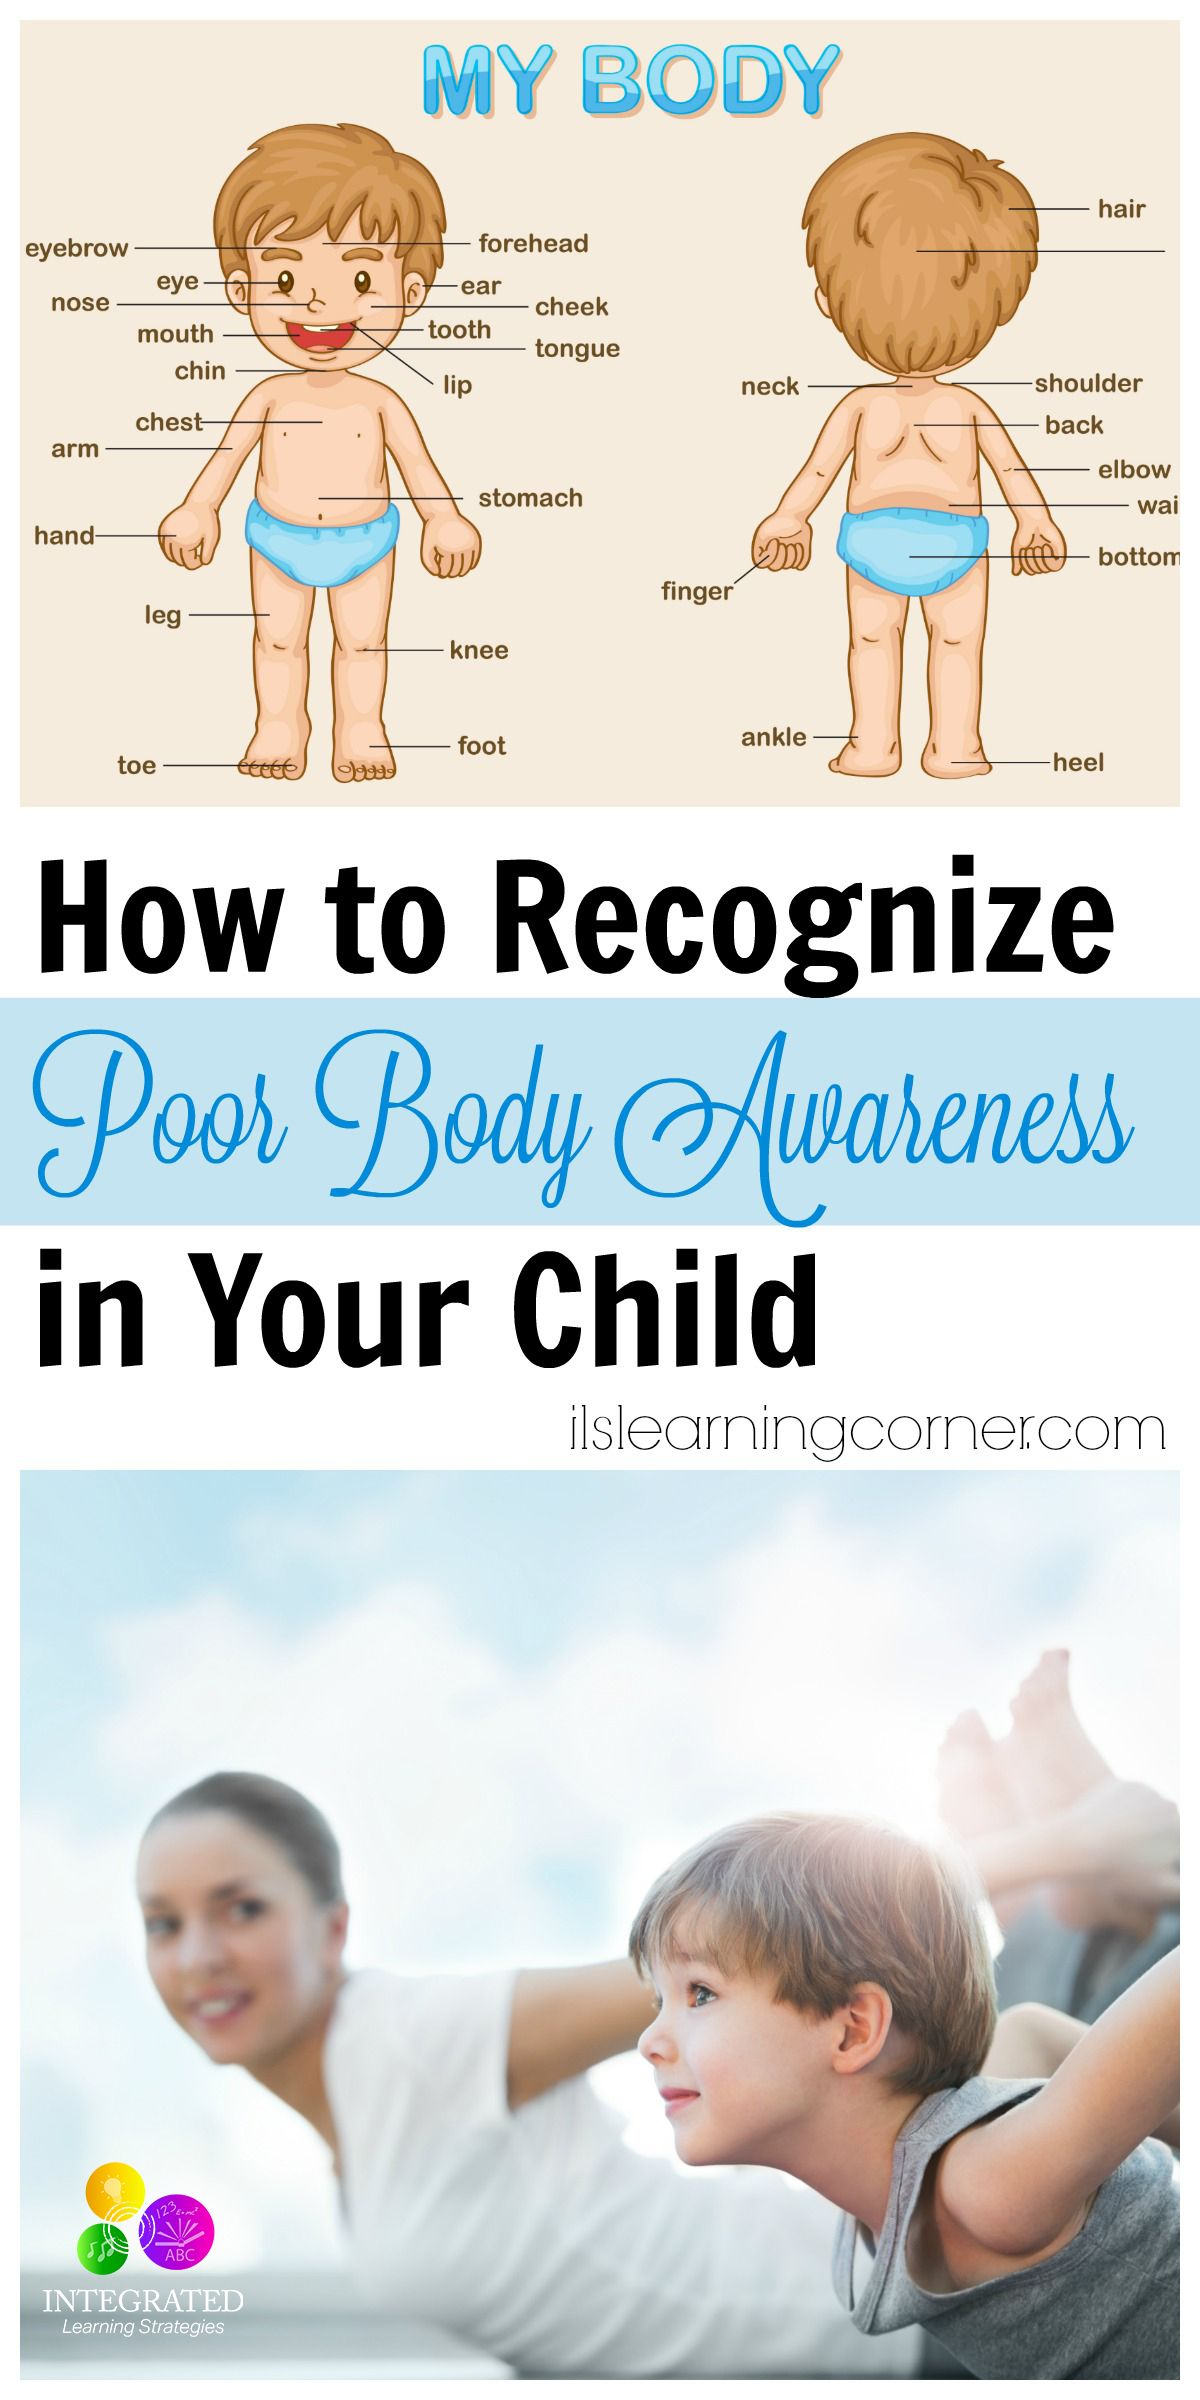 Body Awareness Characteristics Of Impaired Or Poor Proprioception In Your Child